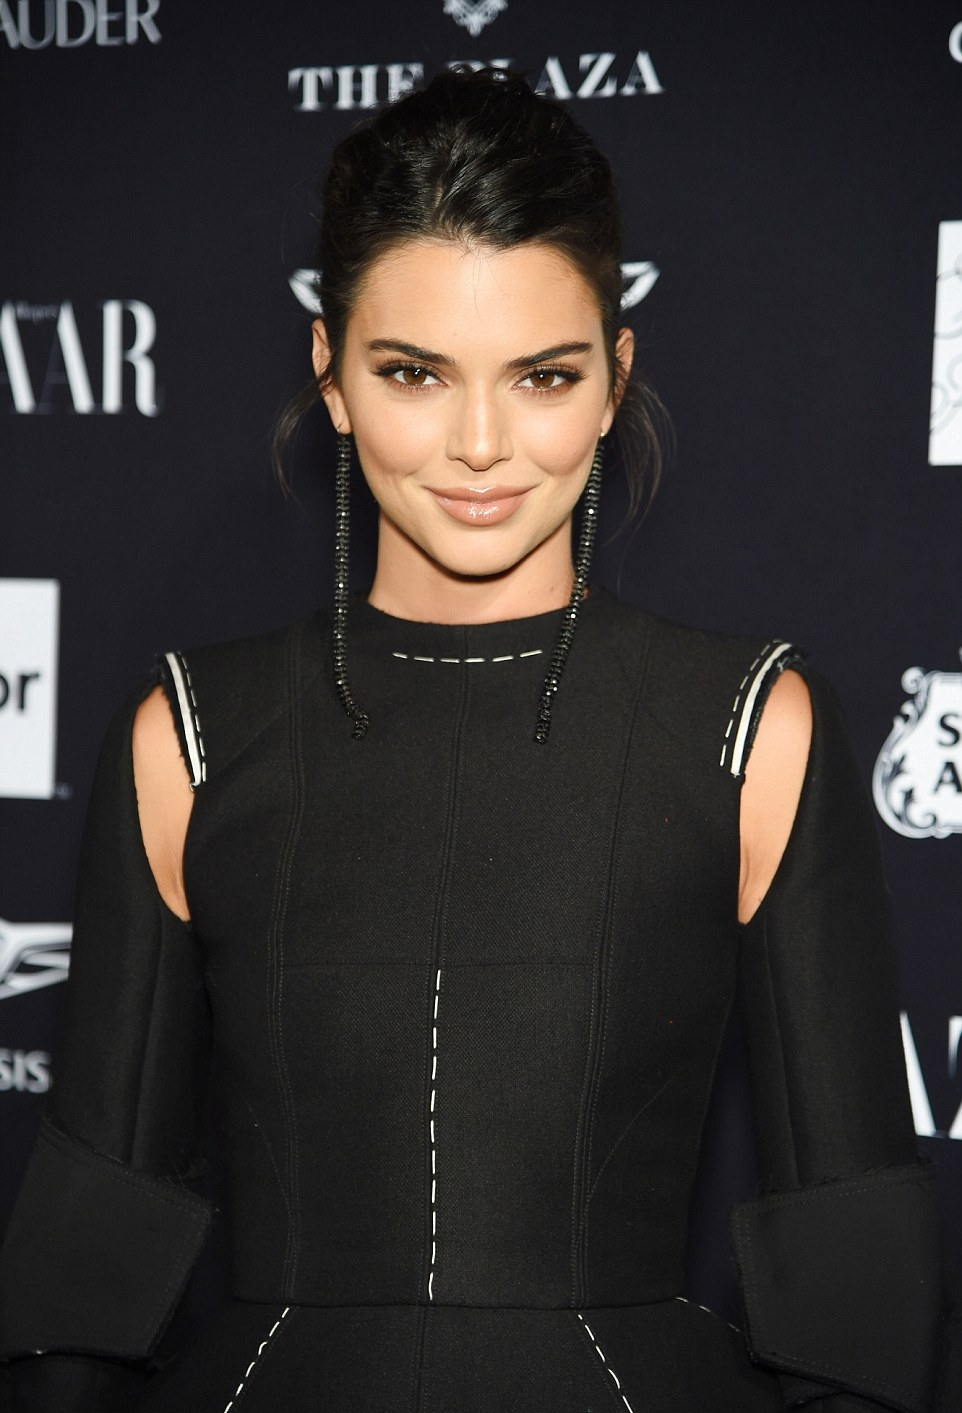 Kendall Jenner wearing a